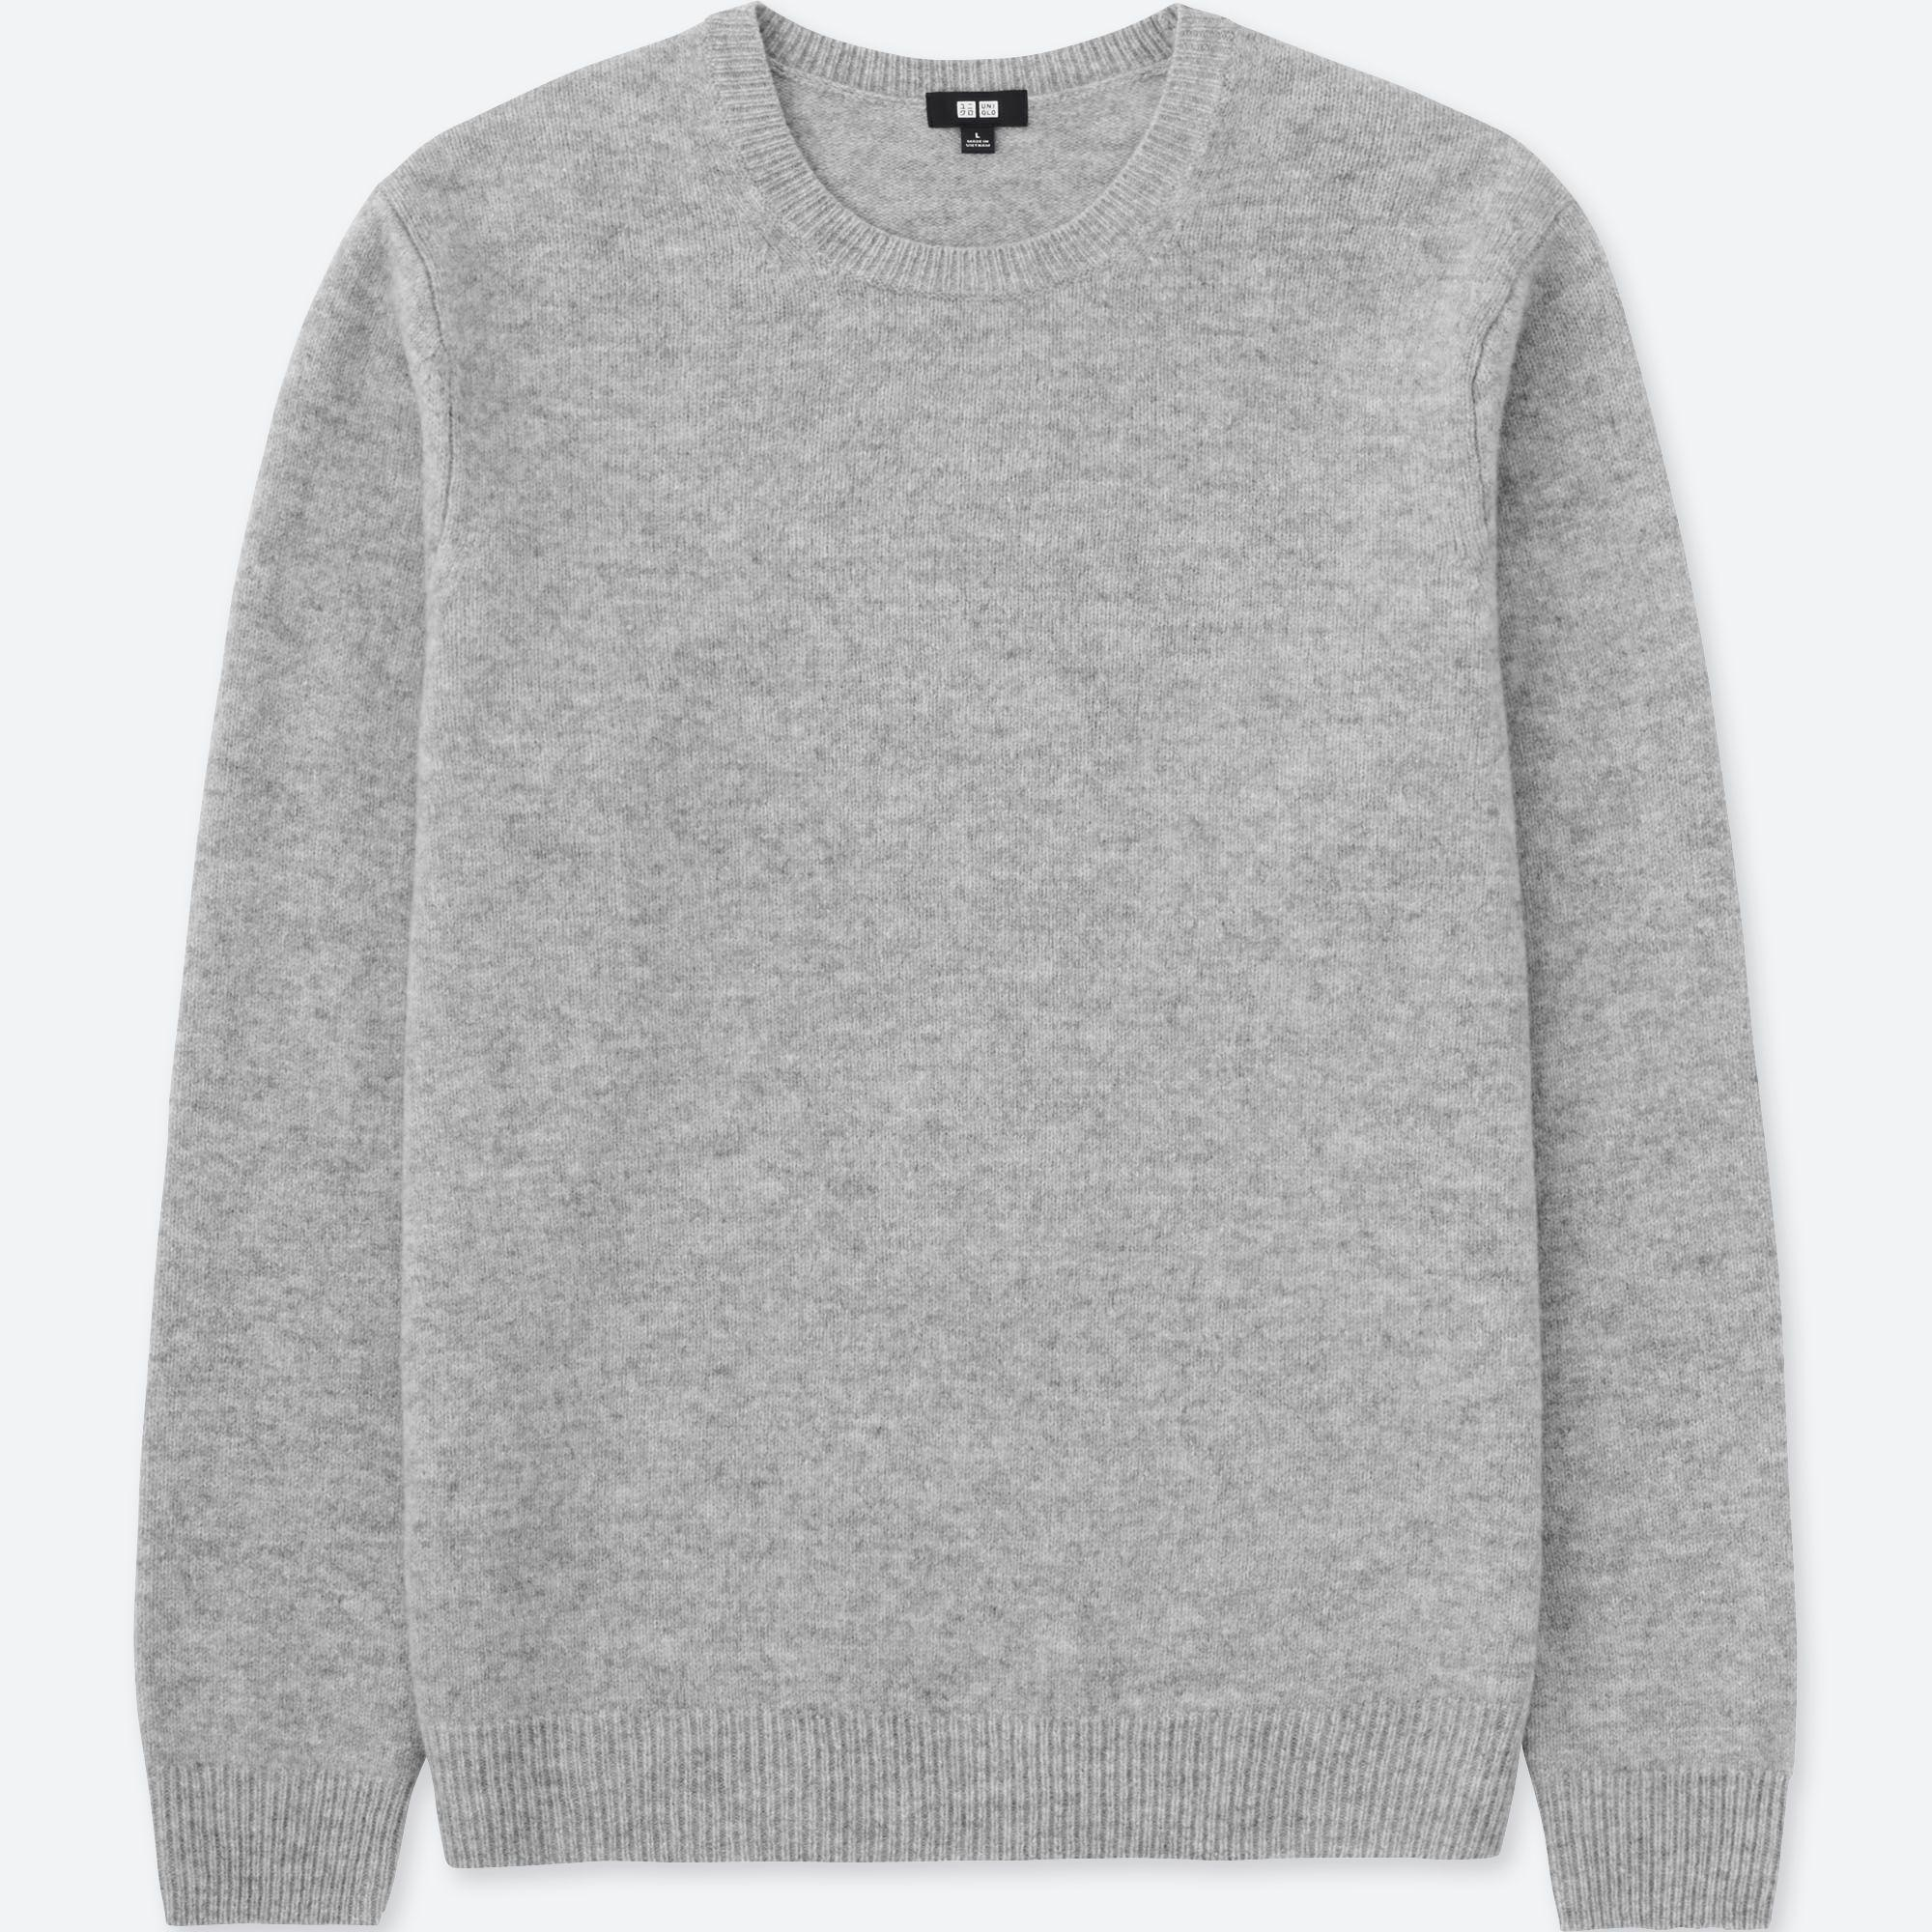 2611bfa76 Uniqlo Premium Lambswool Crew Neck Long Sleeved Jumper in Gray for ...